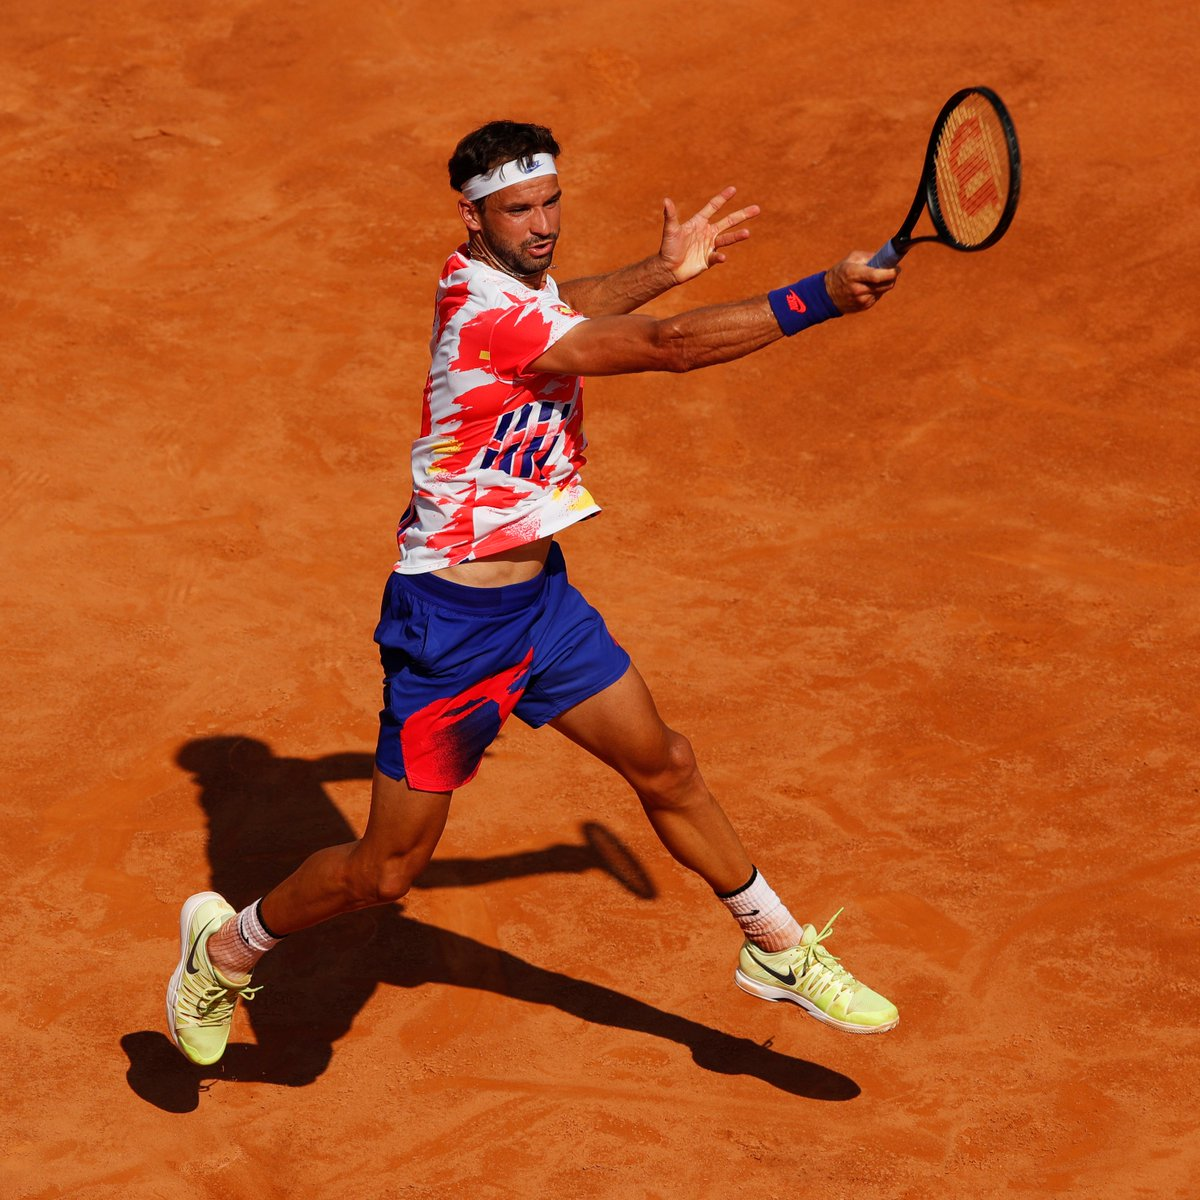 Dimitrov defeats Nishioka 6-1, 6-0 and is into the third round in just under an hour. 💥  Up next for him: Jannik Sinner 👀  #IBI20 https://t.co/NKVm6PM4lH